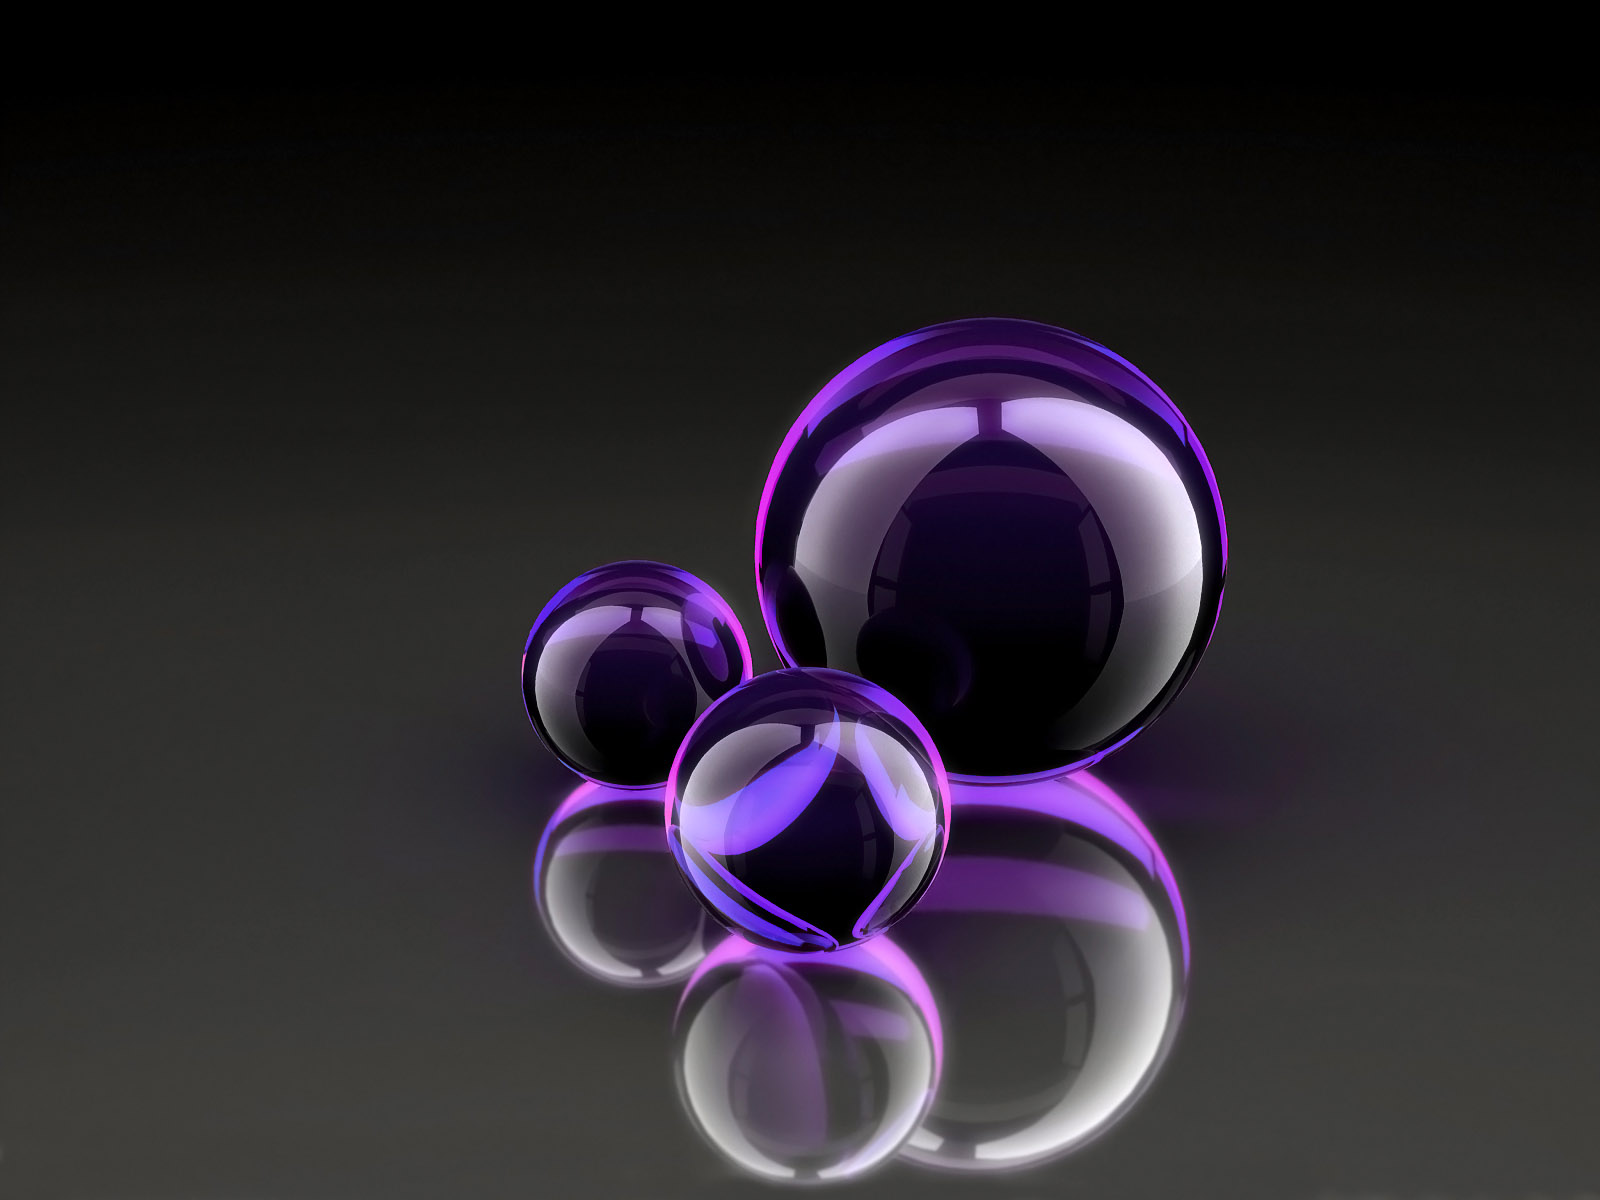 purple wallpapers hd purple wallpapers hd purple wallpapers hd 1600x1200